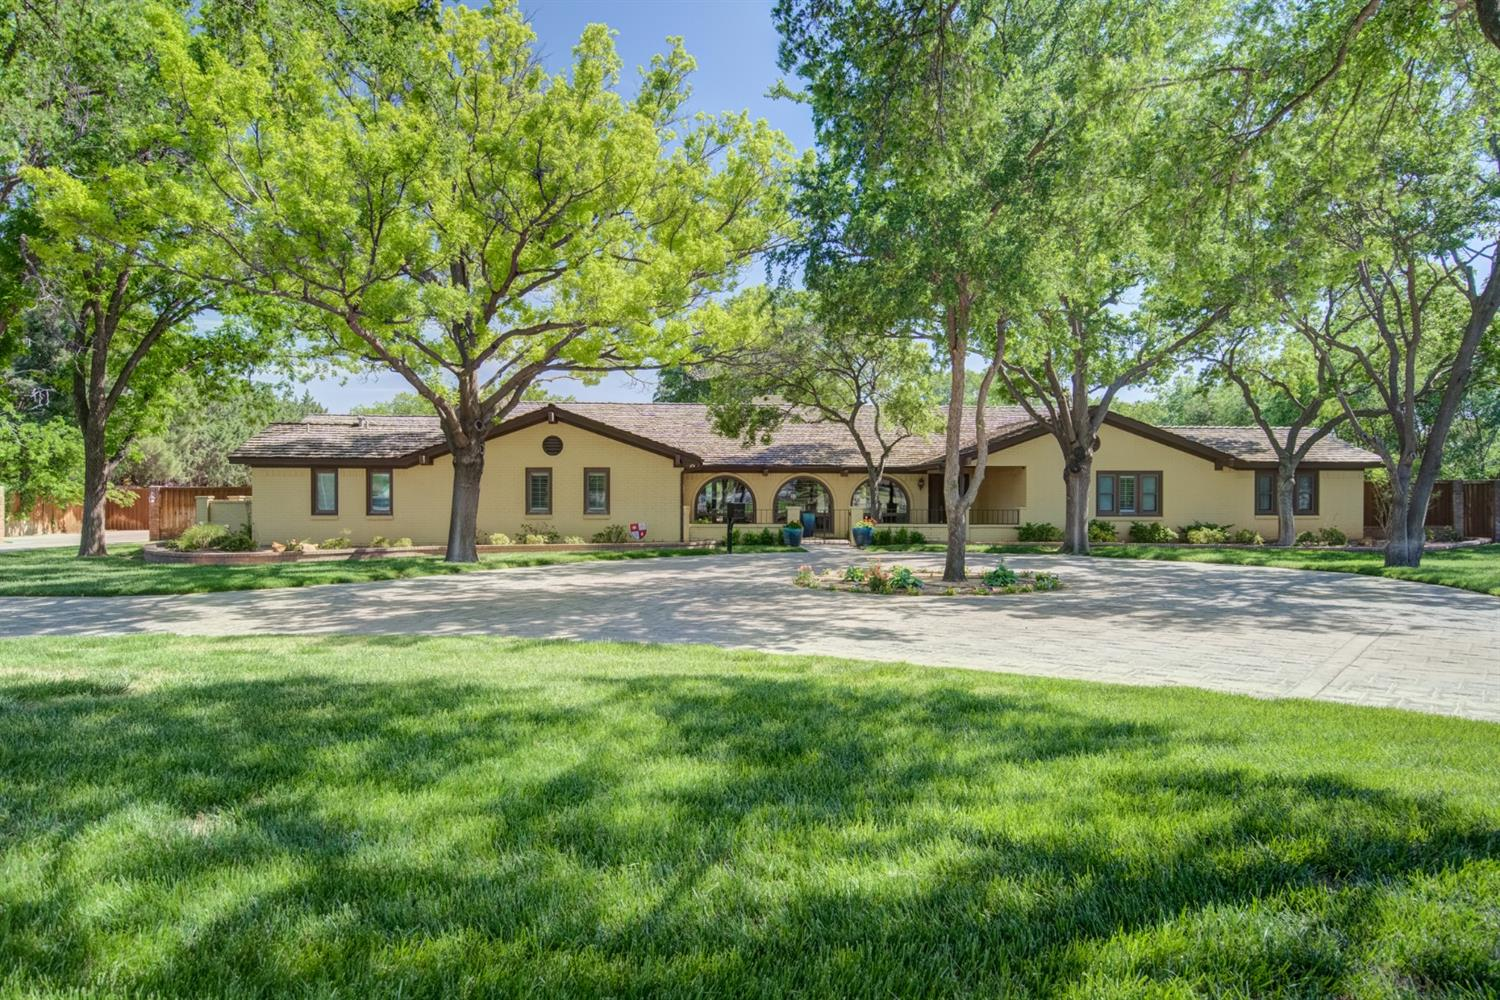 Charmaing home on 1.6 acre.Grand home -5 bedrooms 4.5 baths, 3 car garage, Basement 35x15 plus private bedroom & bath.Gorgeous 20x50 atrium  room overlooks lush backyard w/ lovely pool w/waterfall & beautiful landscaping.RV barn 50x20 with full bathroom. additional Workshop w/garage located at back lot.